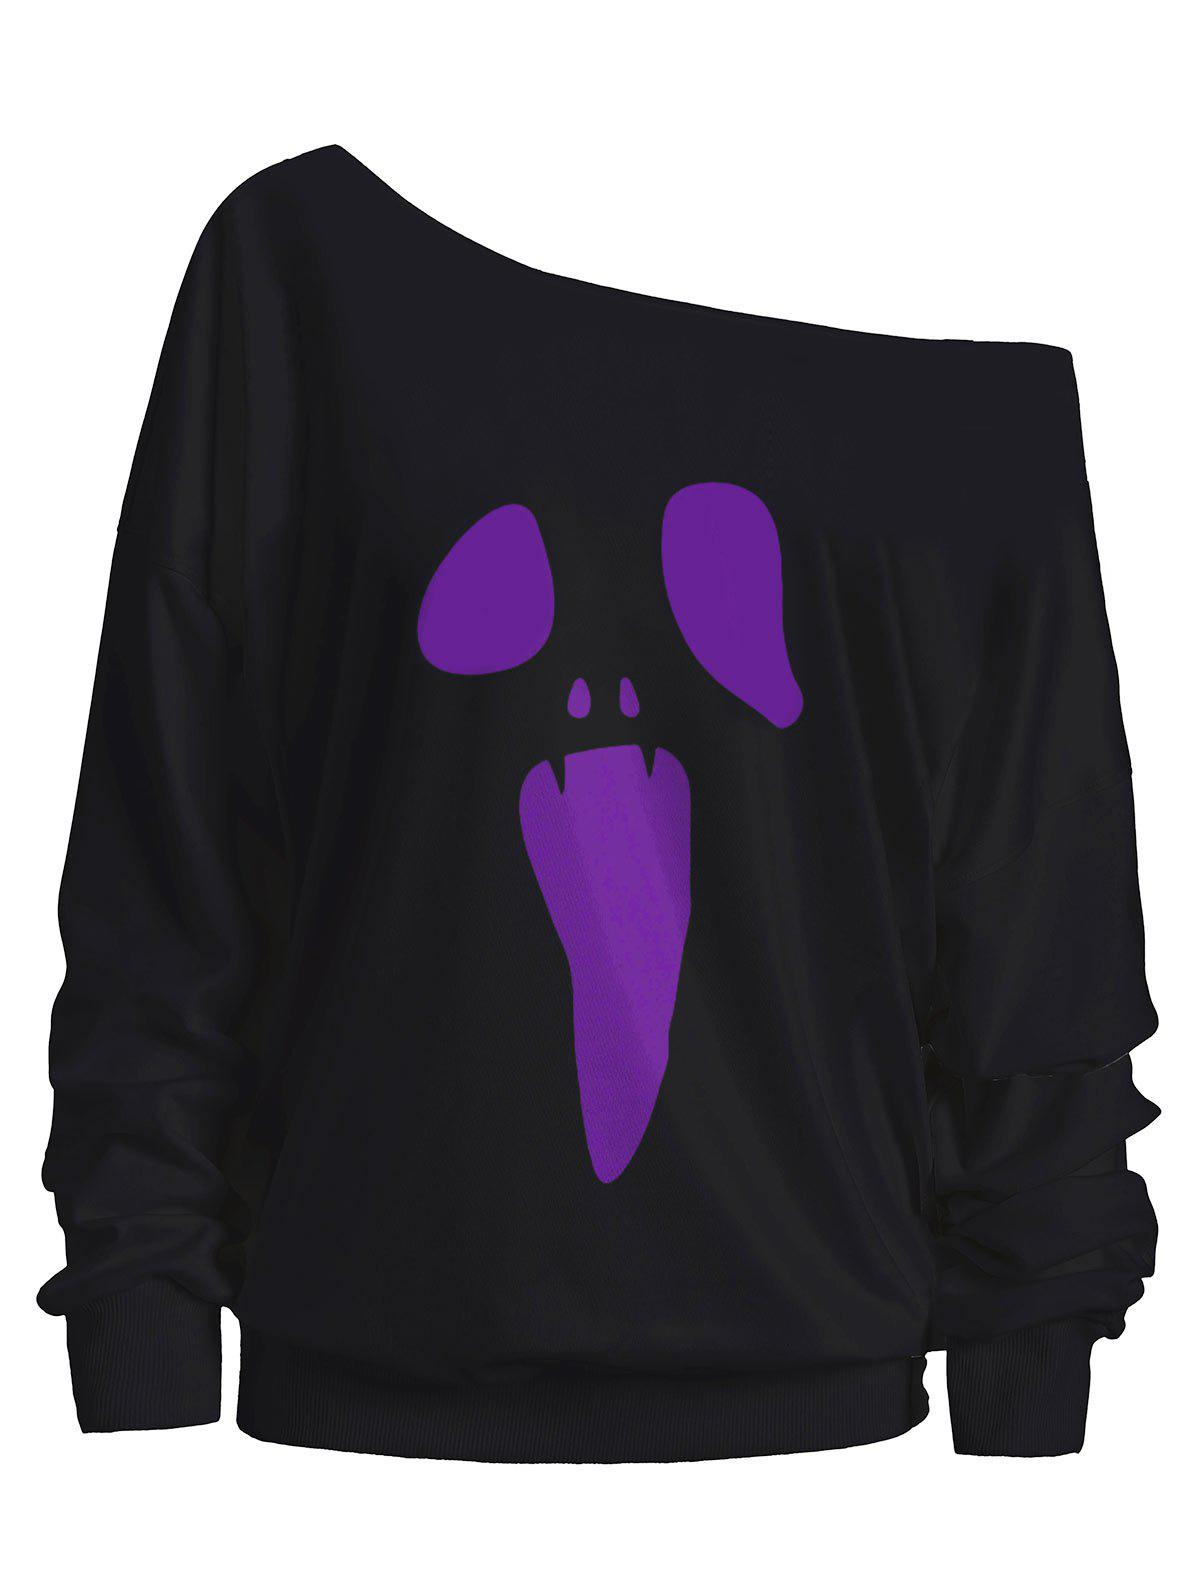 Skew Neck Halloween Ghost SweatshirtWOMEN<br><br>Size: L; Color: PURPLE; Material: Cotton,Polyester; Shirt Length: Regular; Sleeve Length: Full; Style: Casual; Pattern Style: Print; Season: Fall; Weight: 0.3500kg; Package Contents: 1 x Sweatshirt;